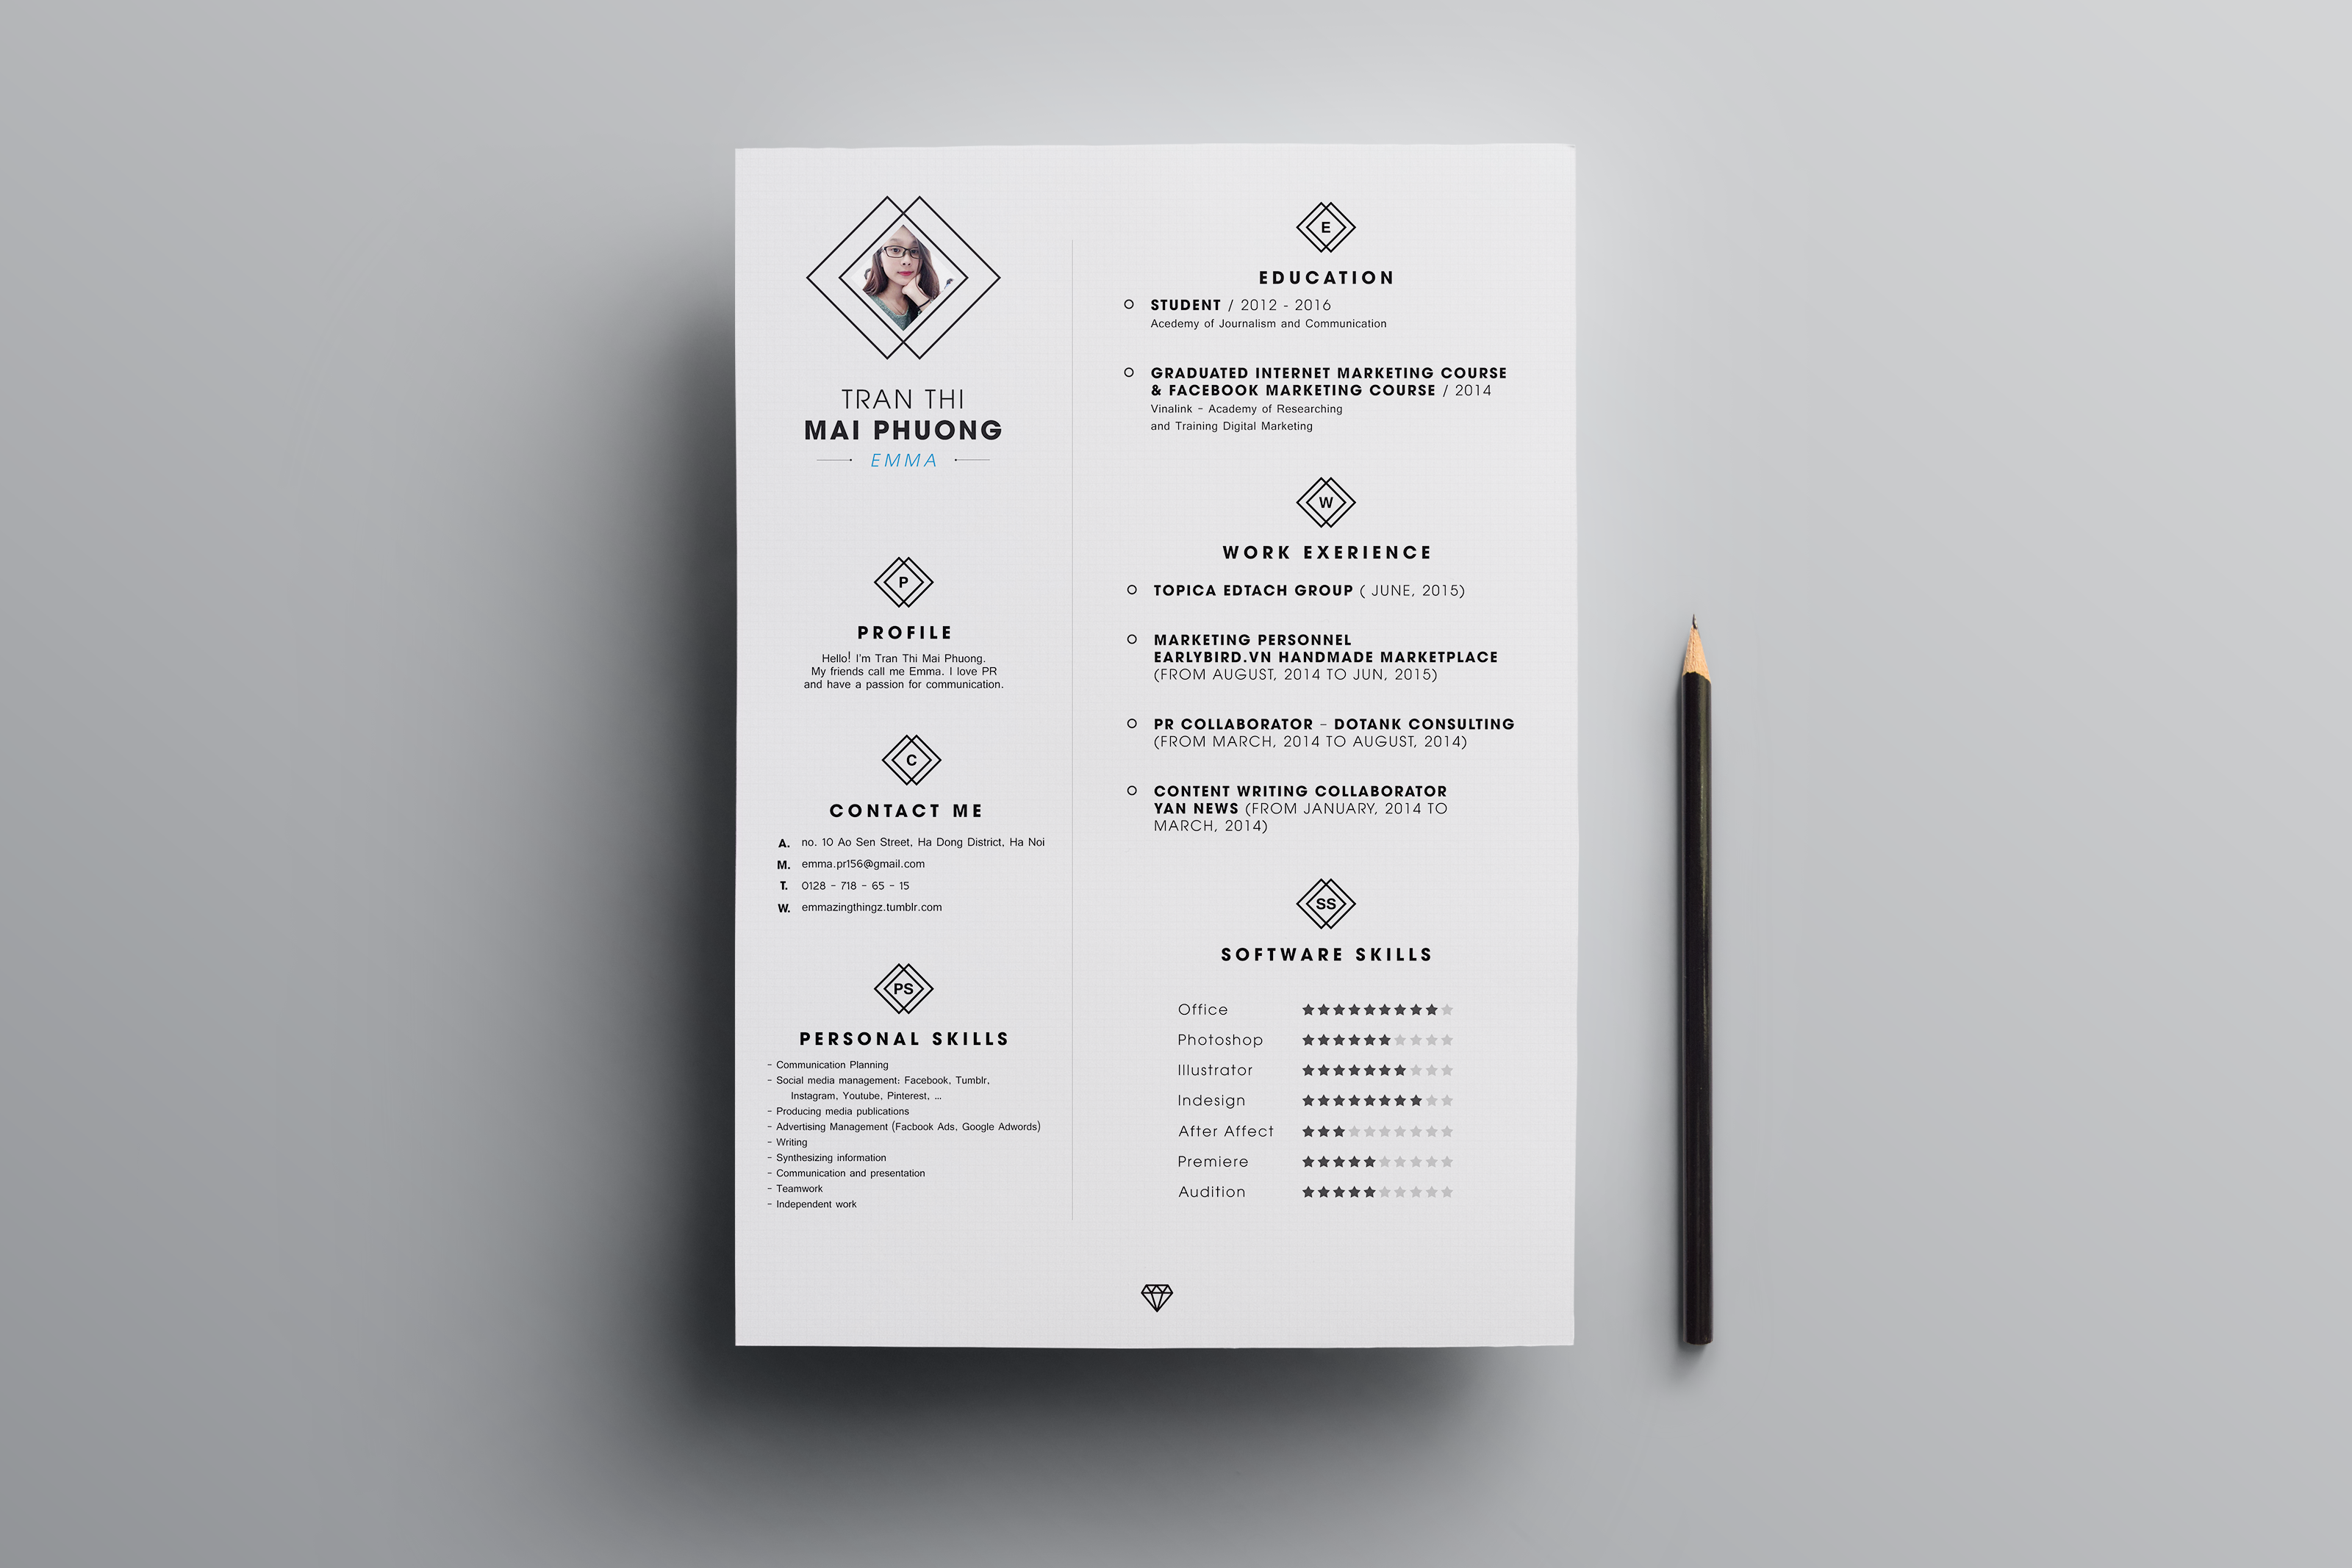 FREE Resume Template on Behance Outstanding Photoshop